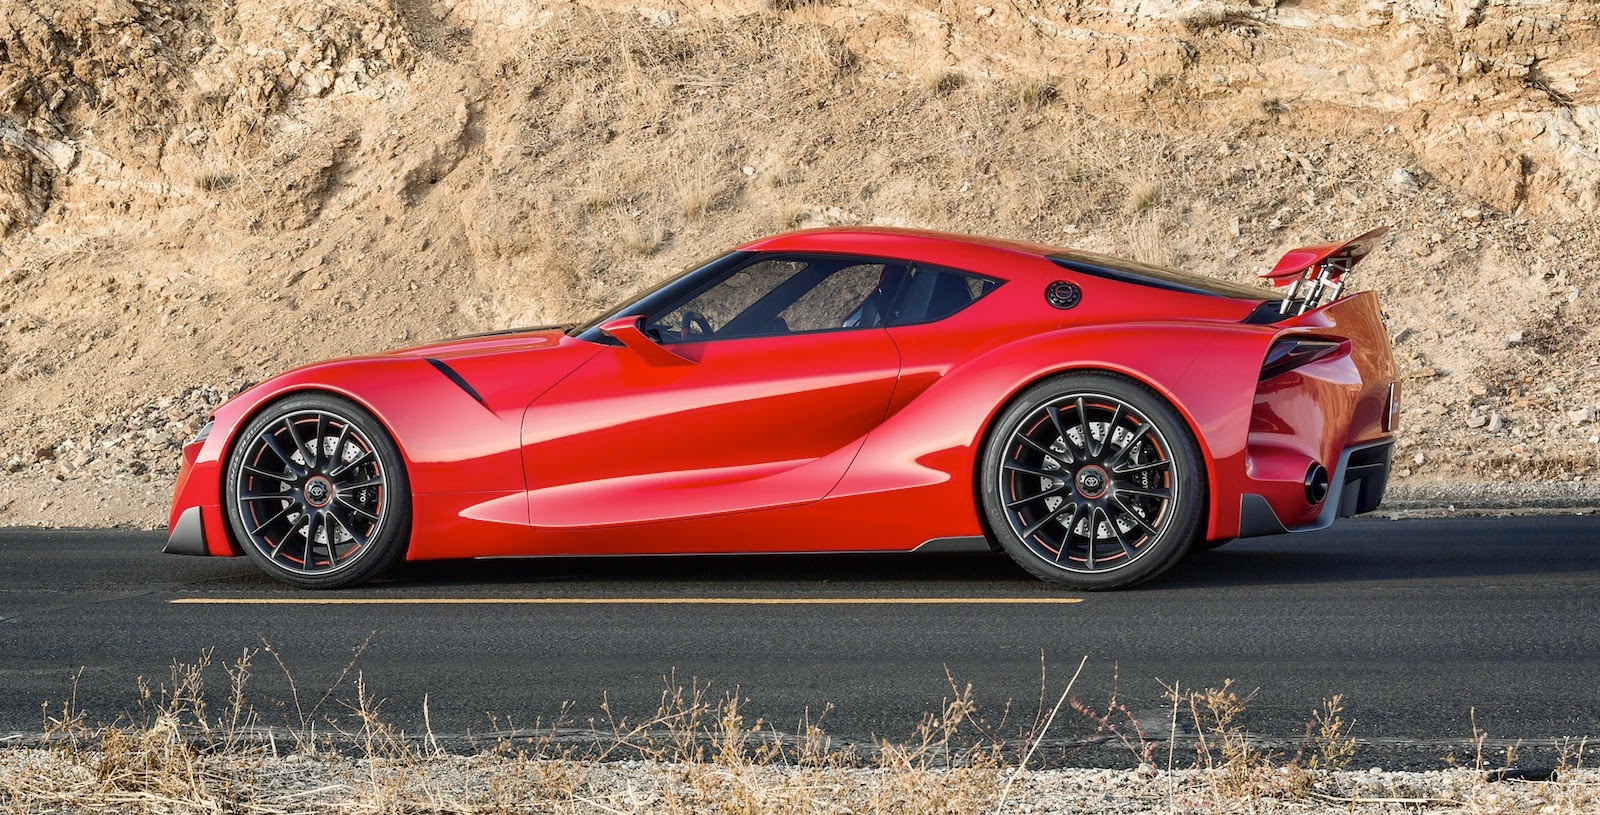 Toyota Supra, BMW Z4 Sports Cars To Share Platform